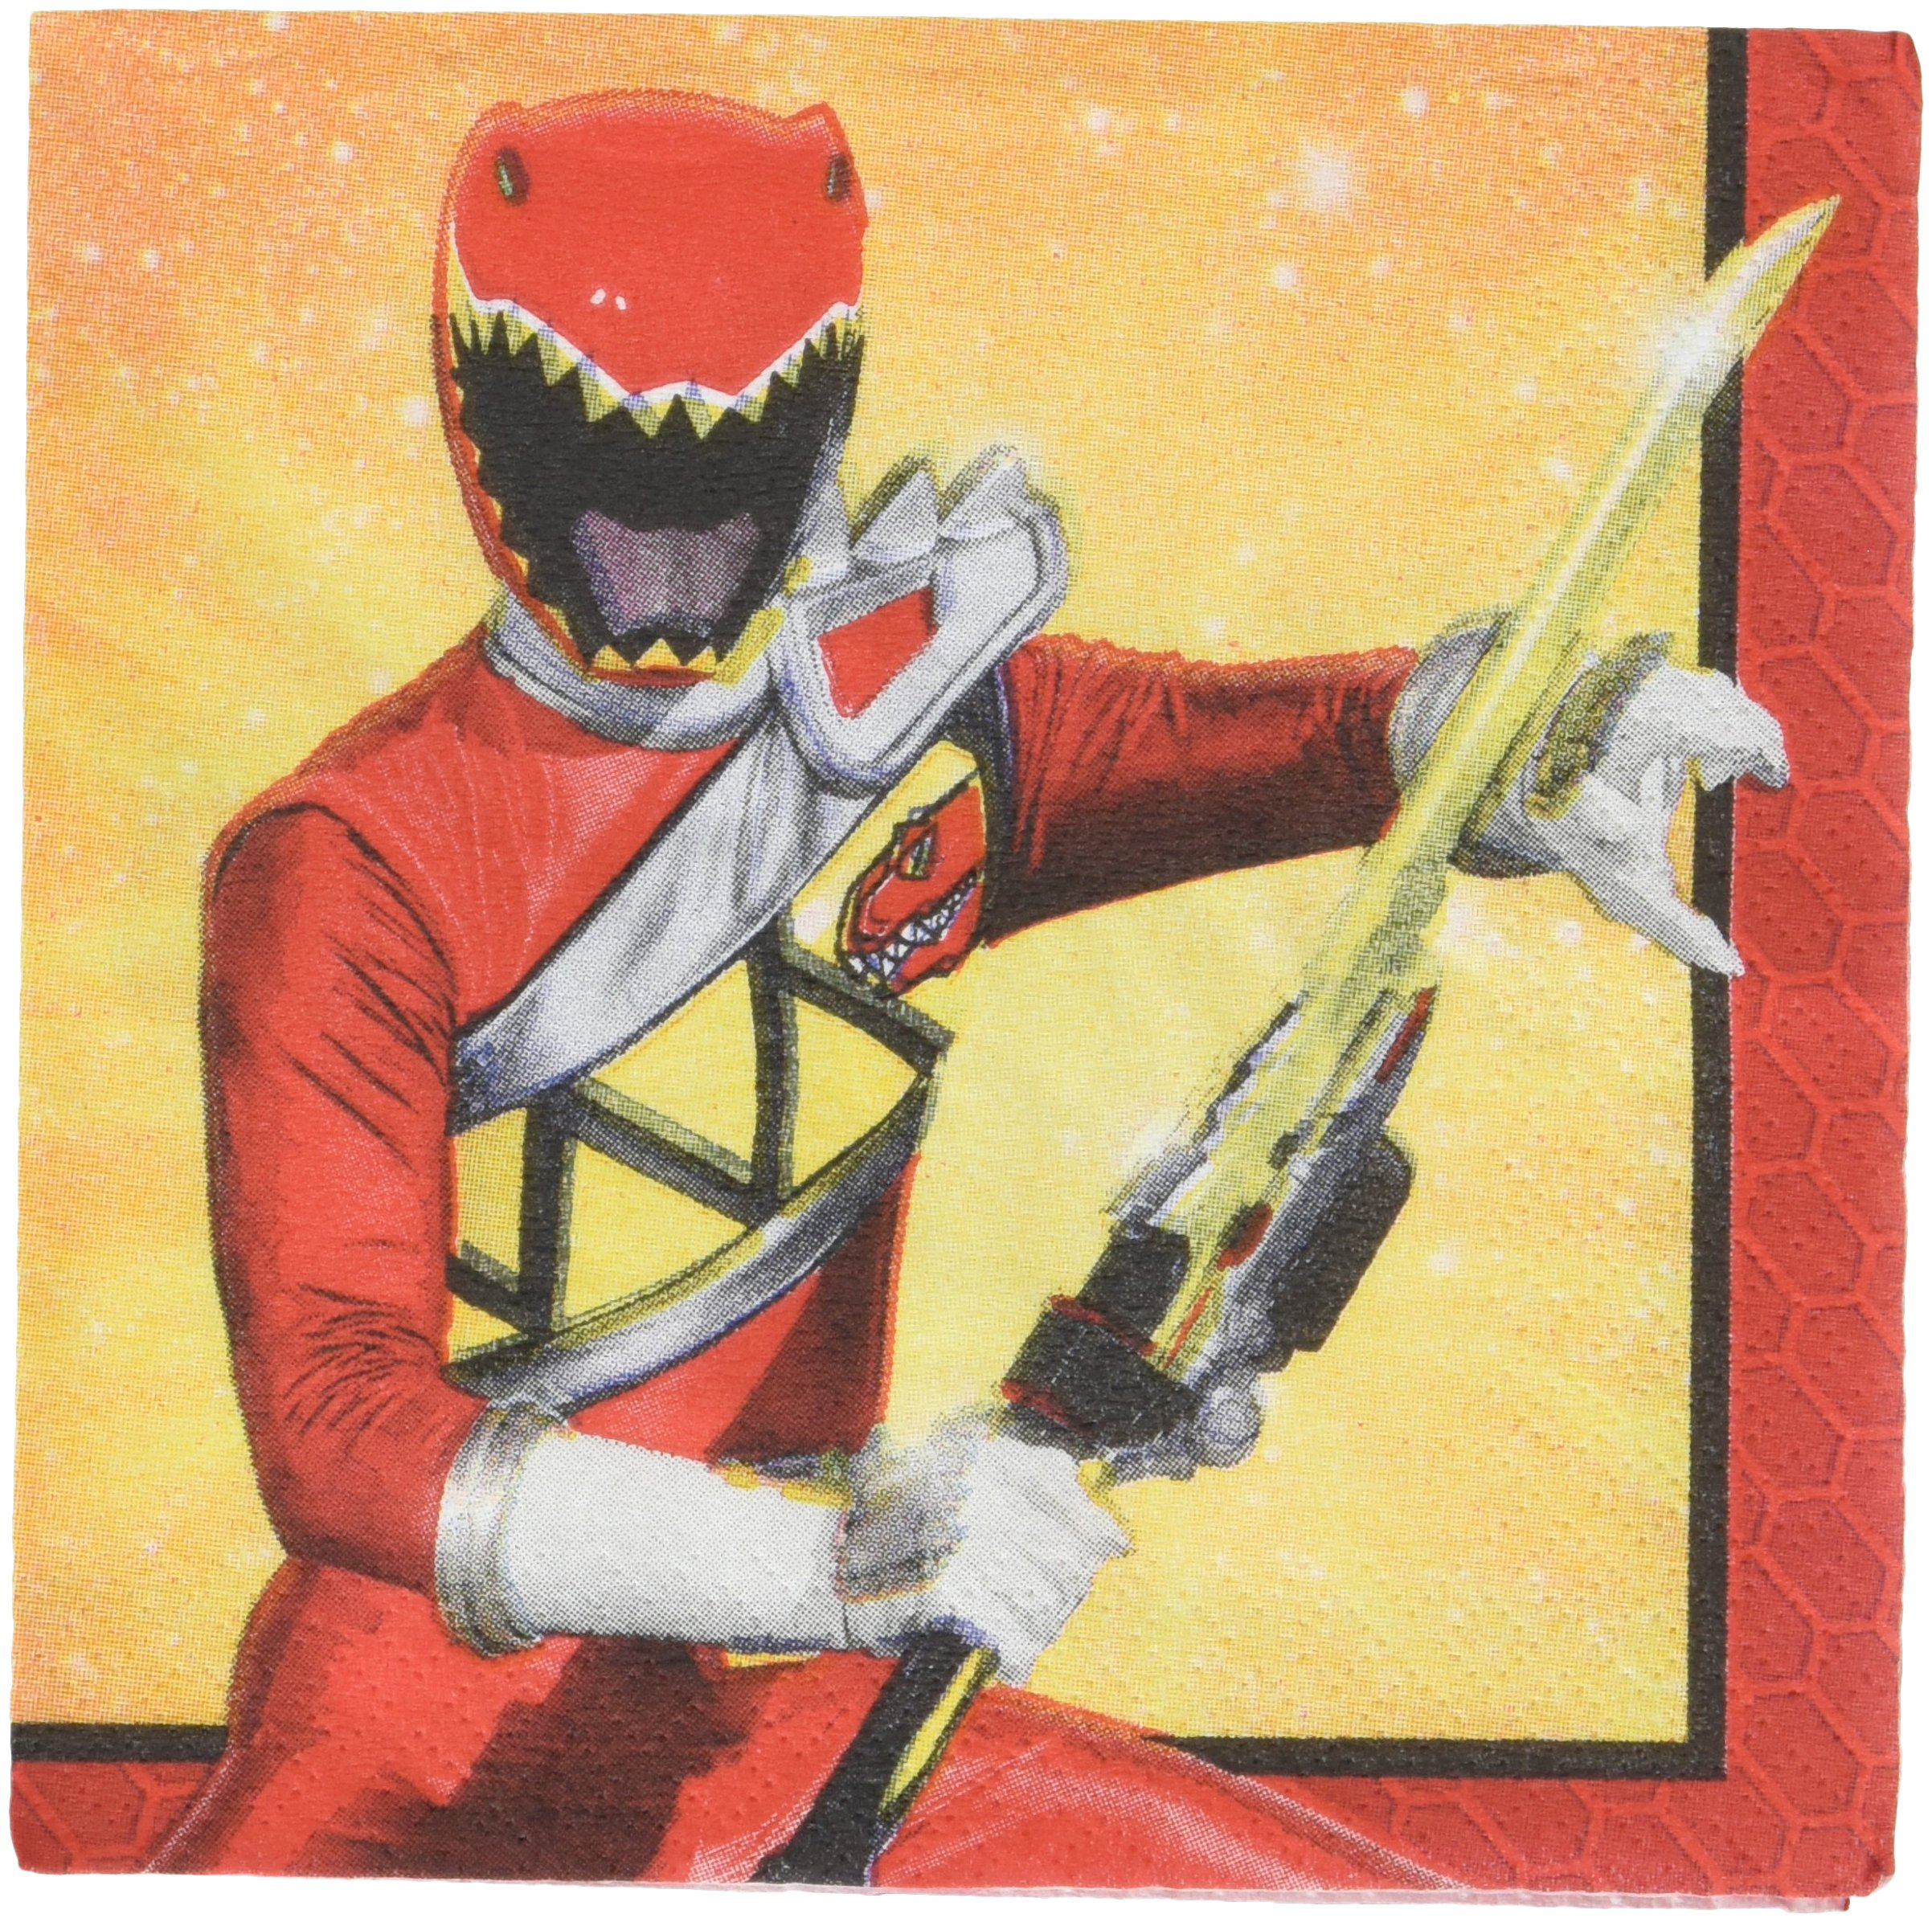 amscan Power Rangers Dino Charge Beverage Napkins, Party Favor, 96 Ct.